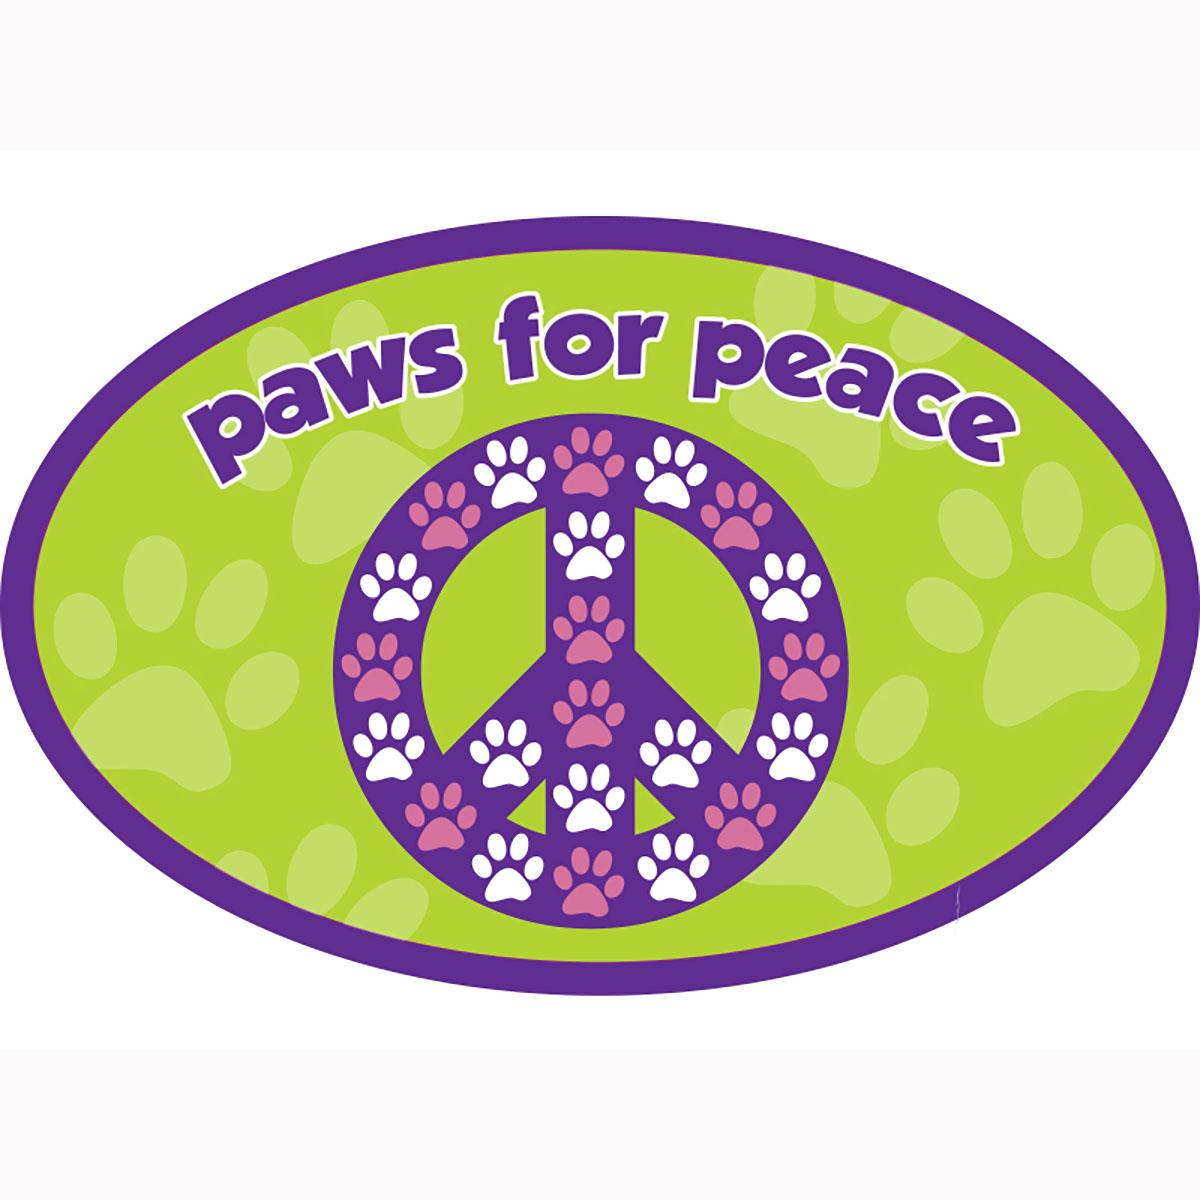 Paws For Peace Oval Magnet by Dog Speak